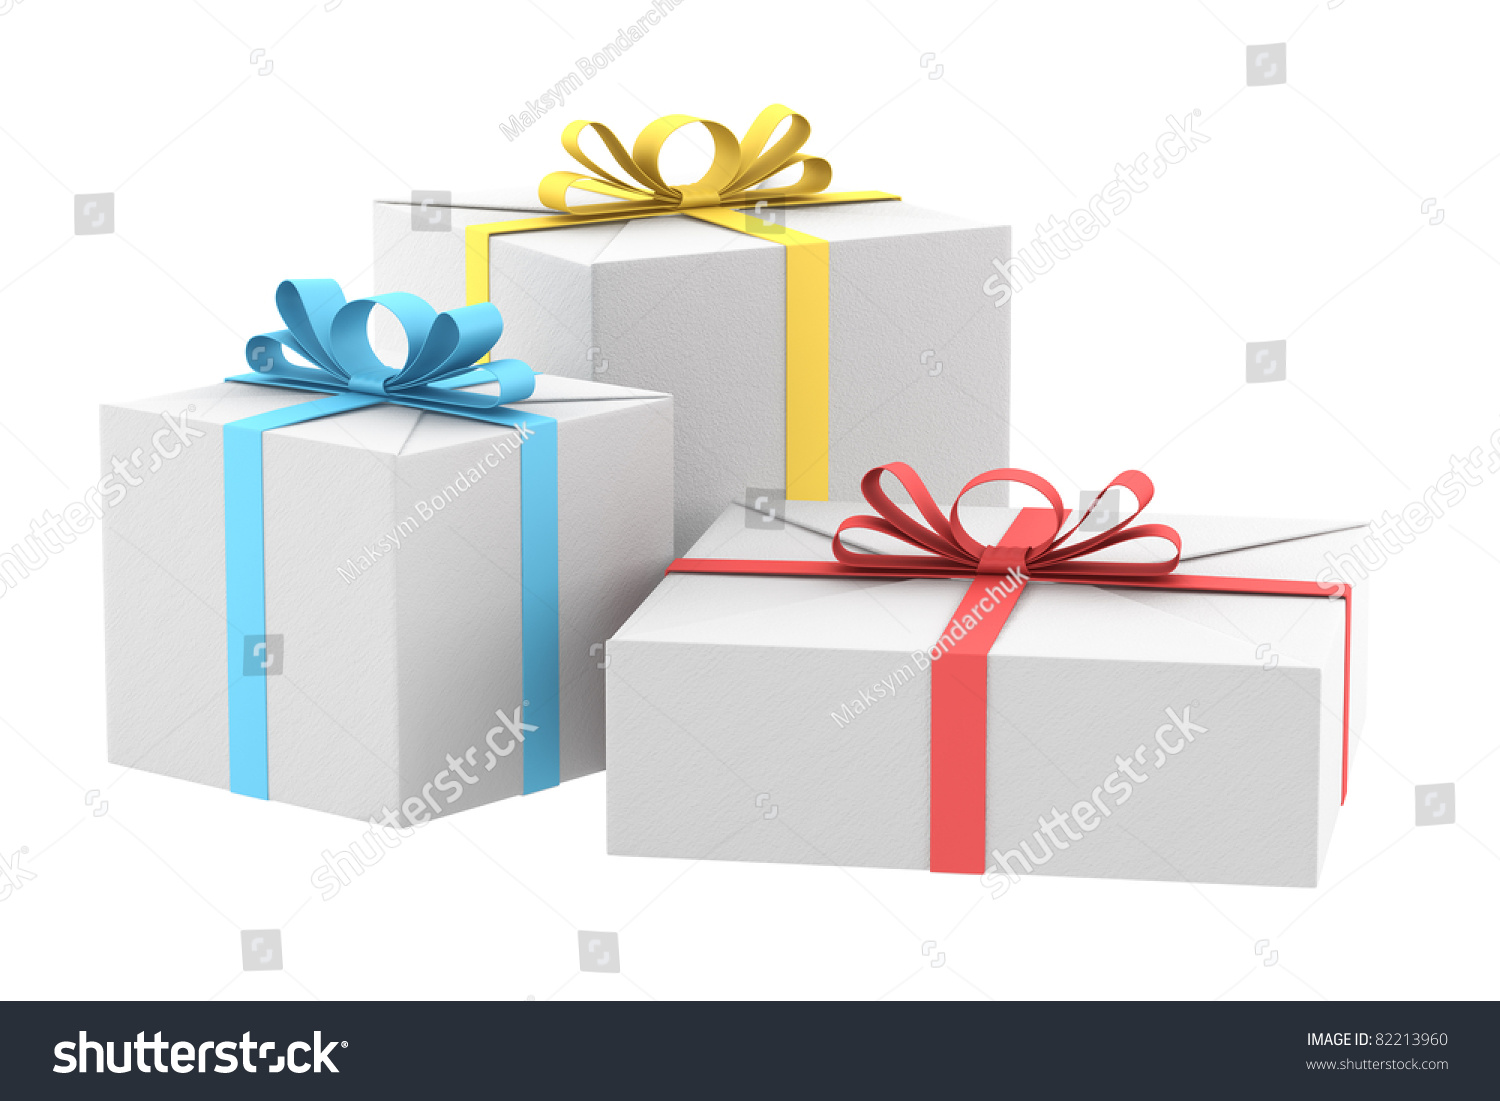 Three white gift boxes color ribbons stock illustration 82213960 three white gift boxes color ribbons stock illustration 82213960 shutterstock negle Image collections